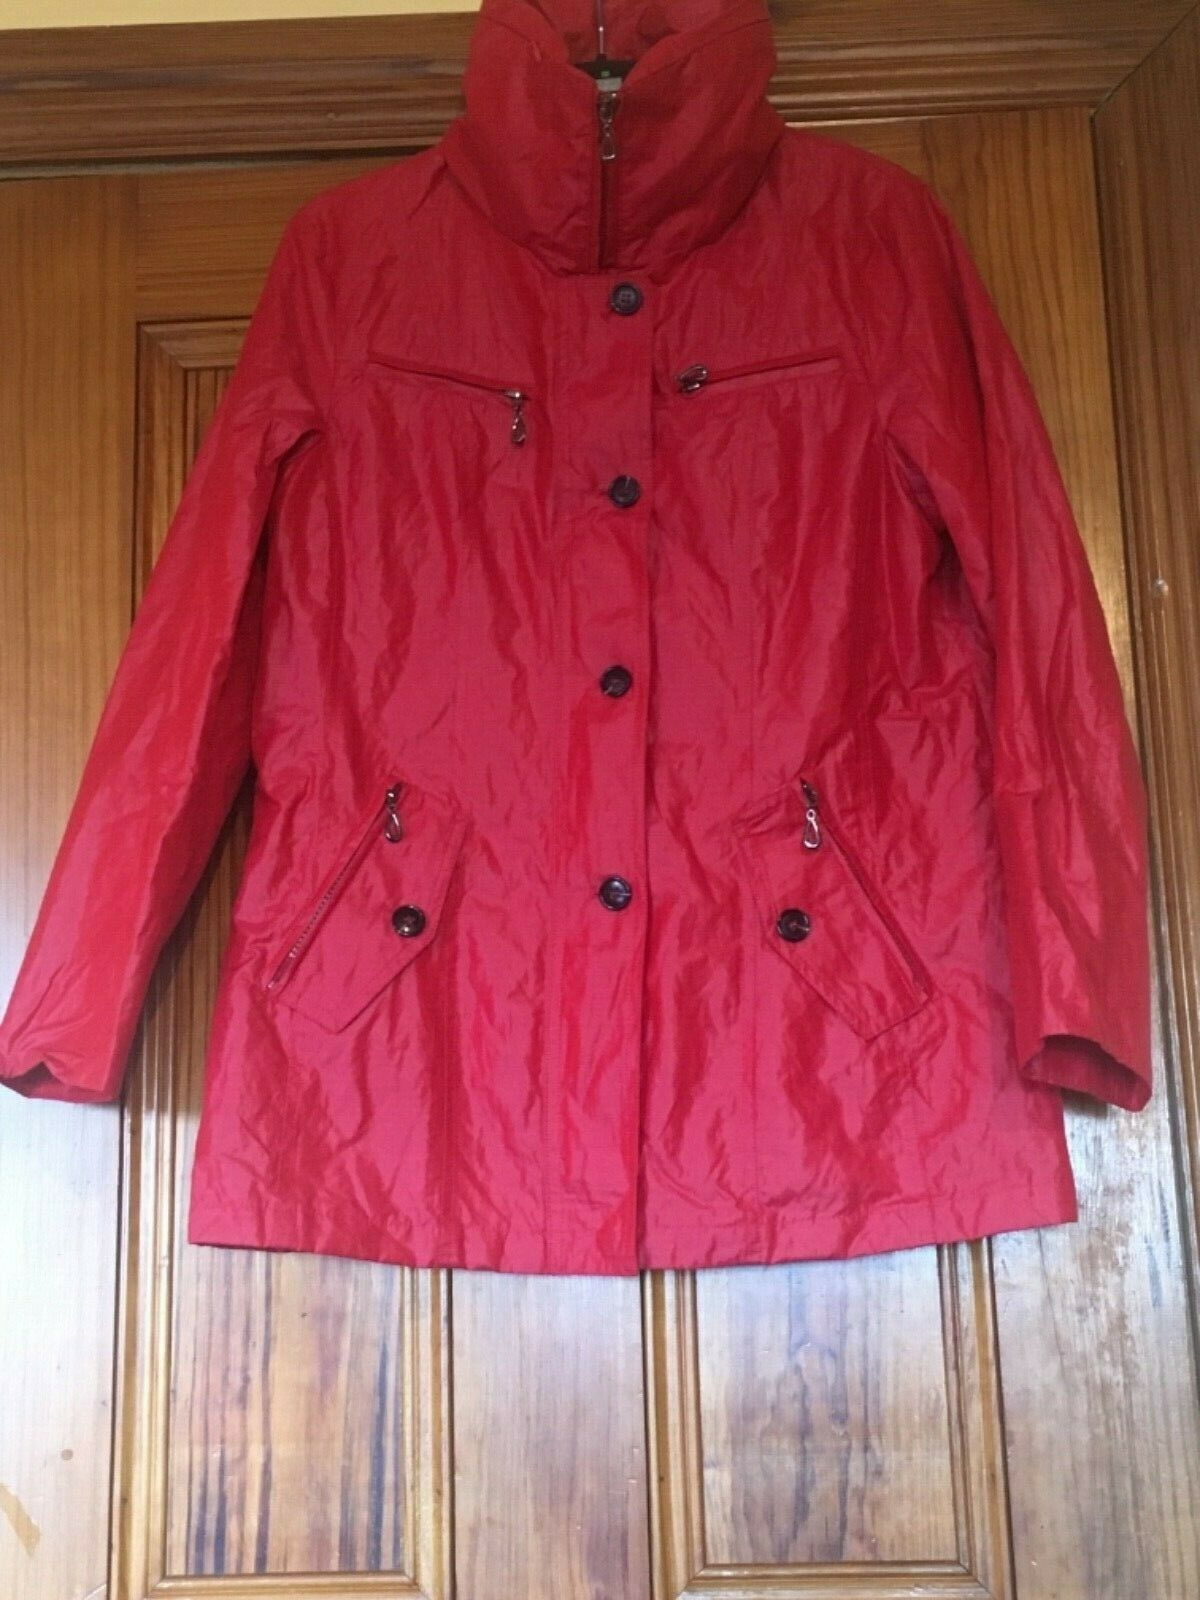 First Avenue Size 12 Red Coat with High Feature Zip Up Collar and 5 Pockets